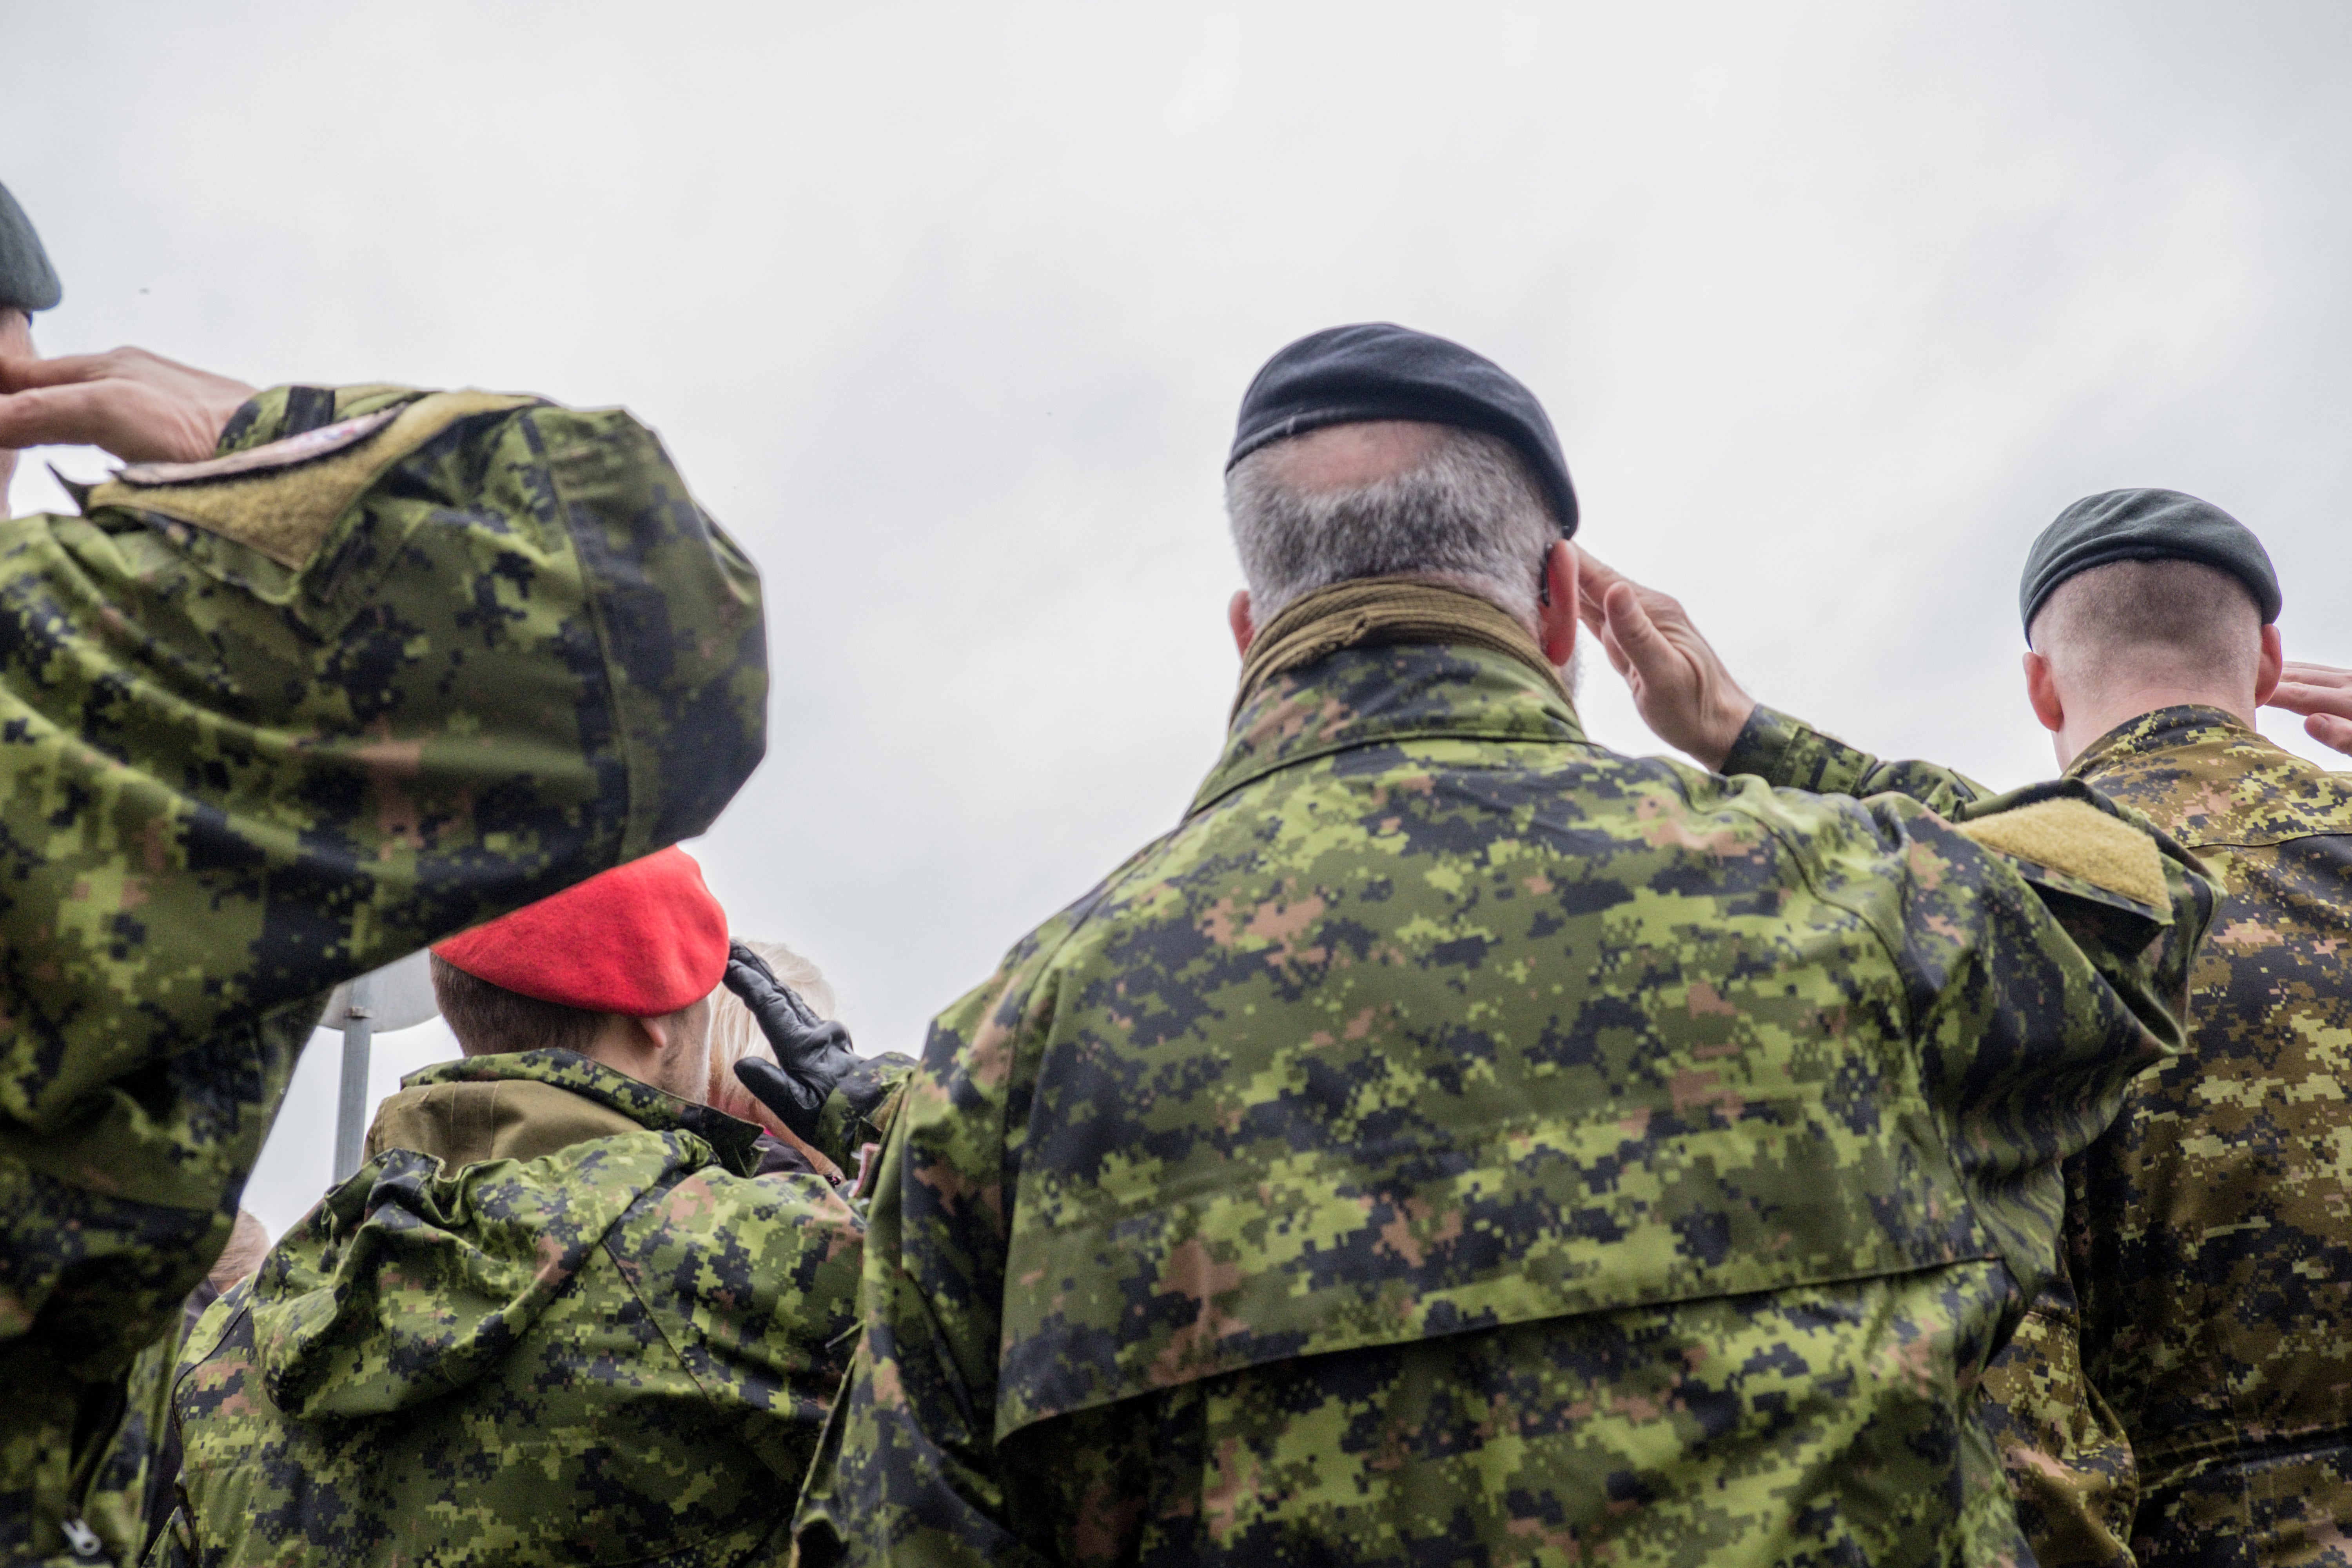 Canadian soldiers saluting in uniform